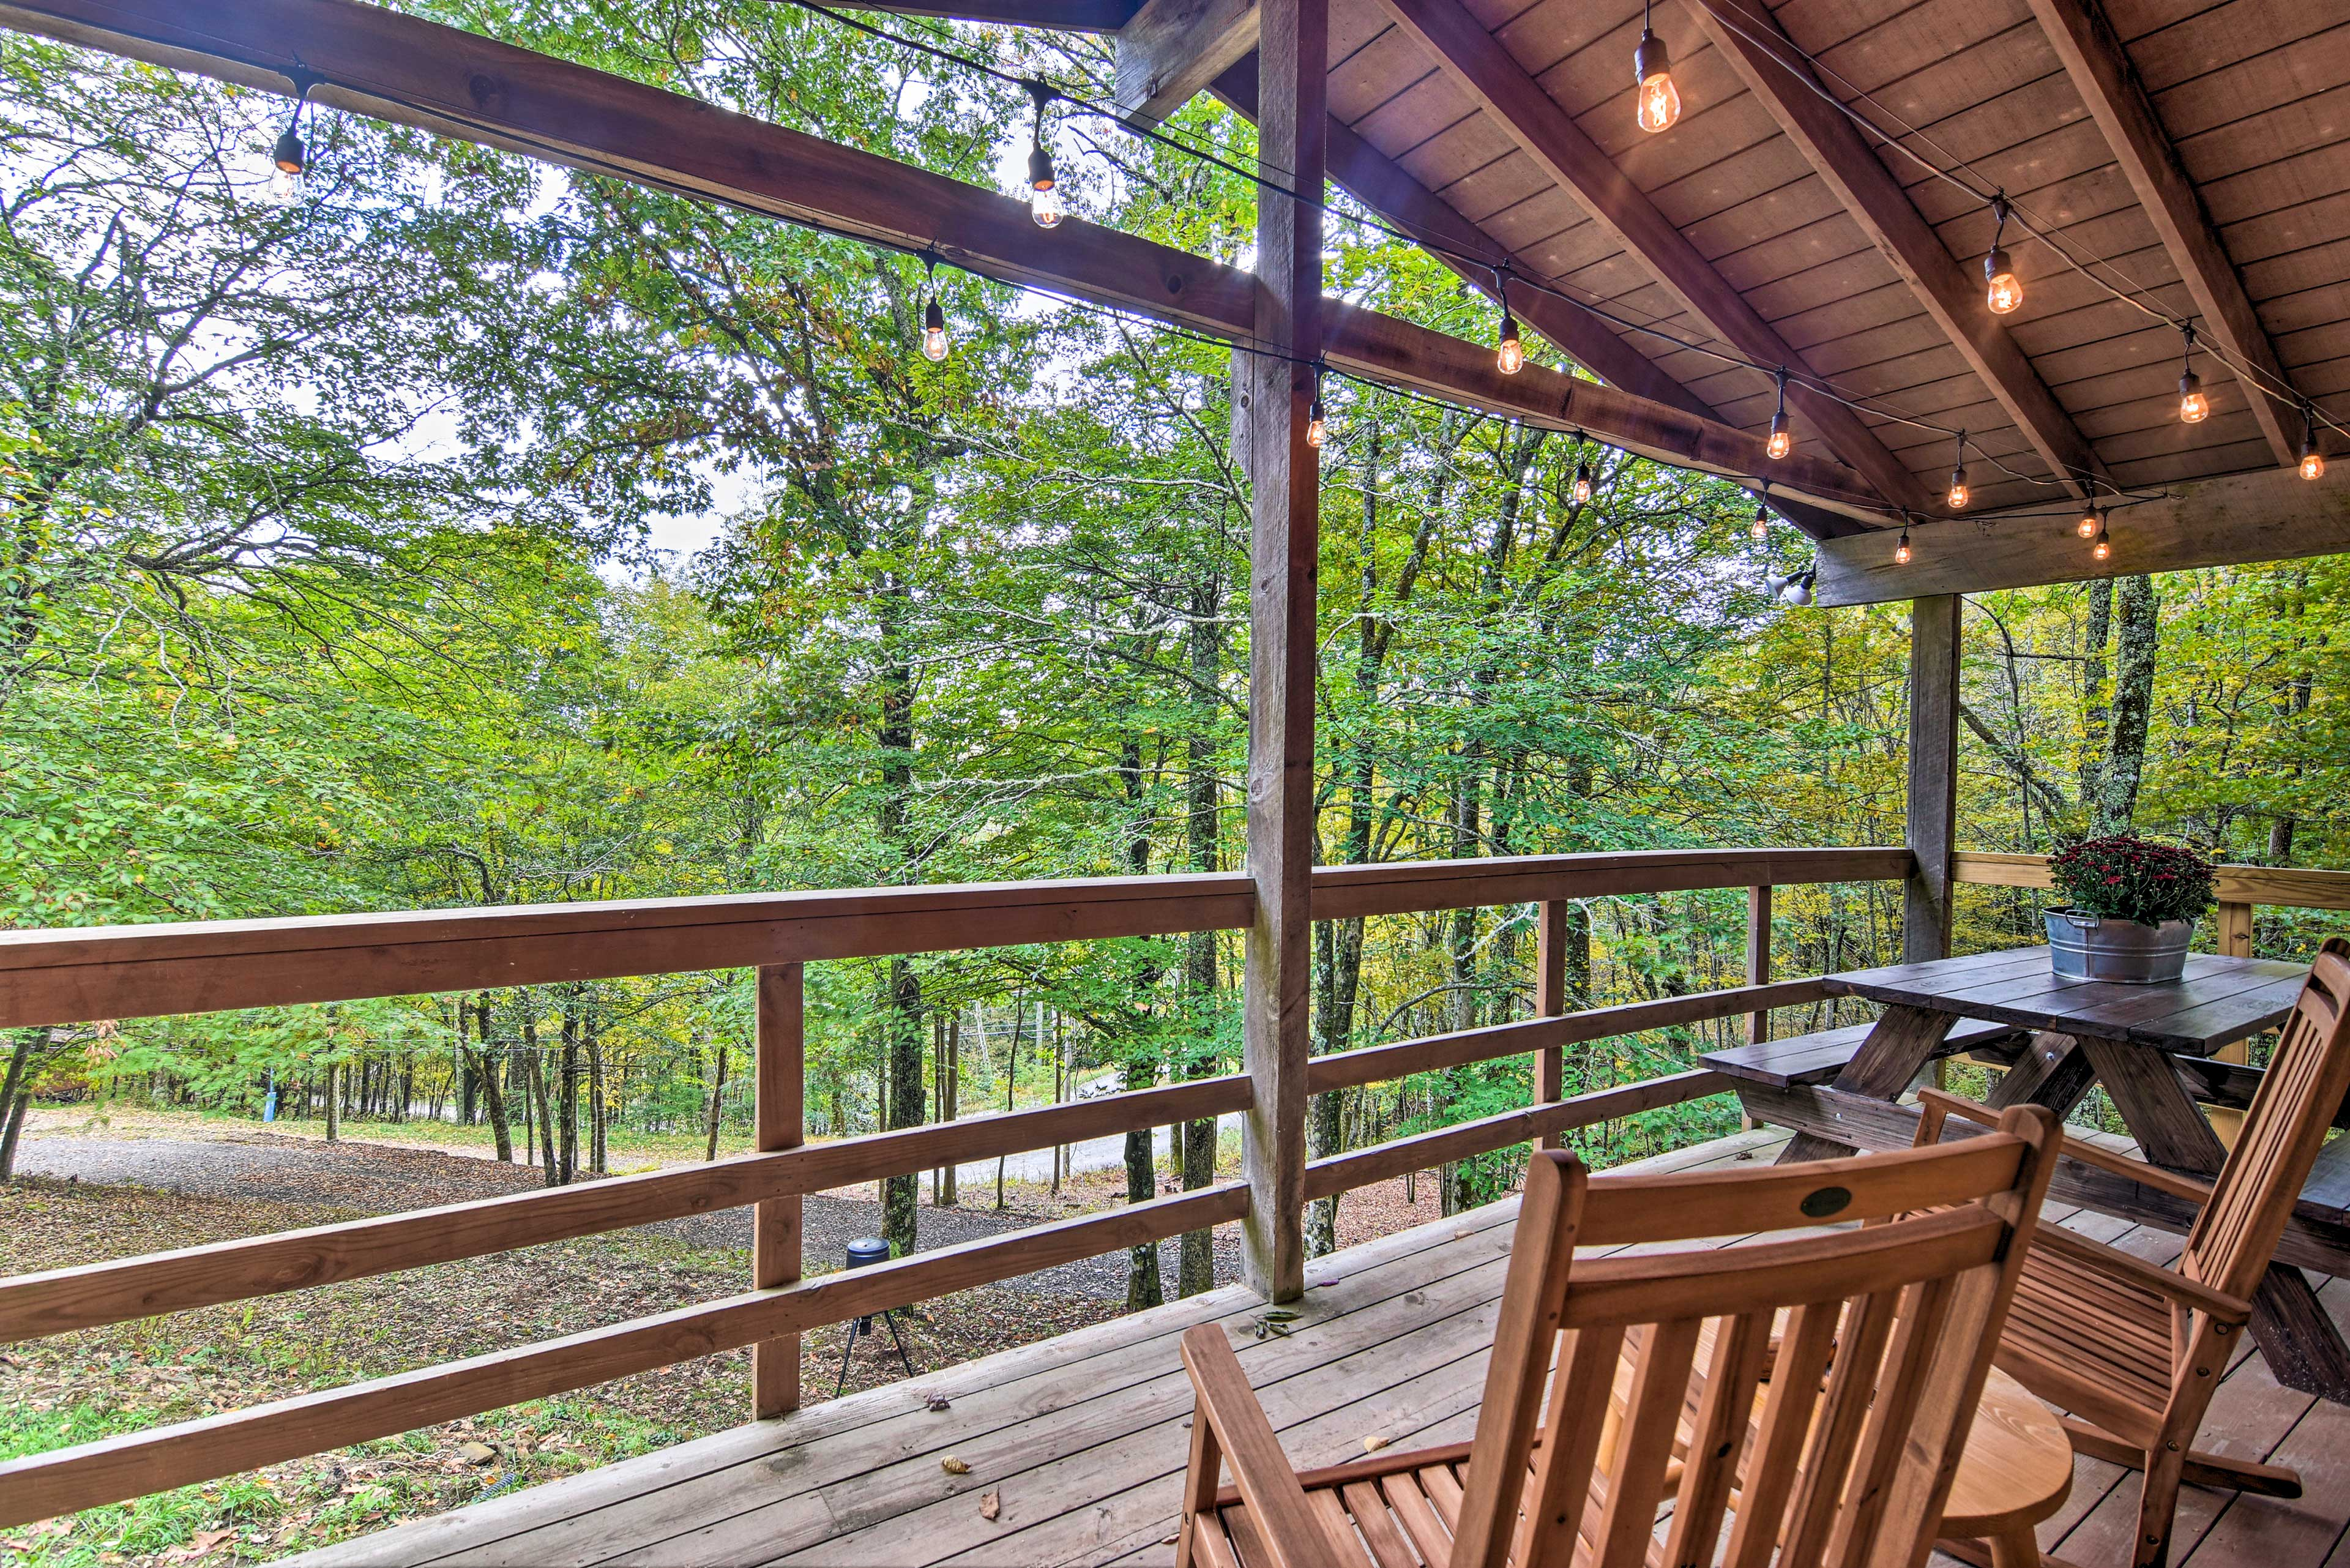 The vacation rental offers ample space for up to 6 guests.